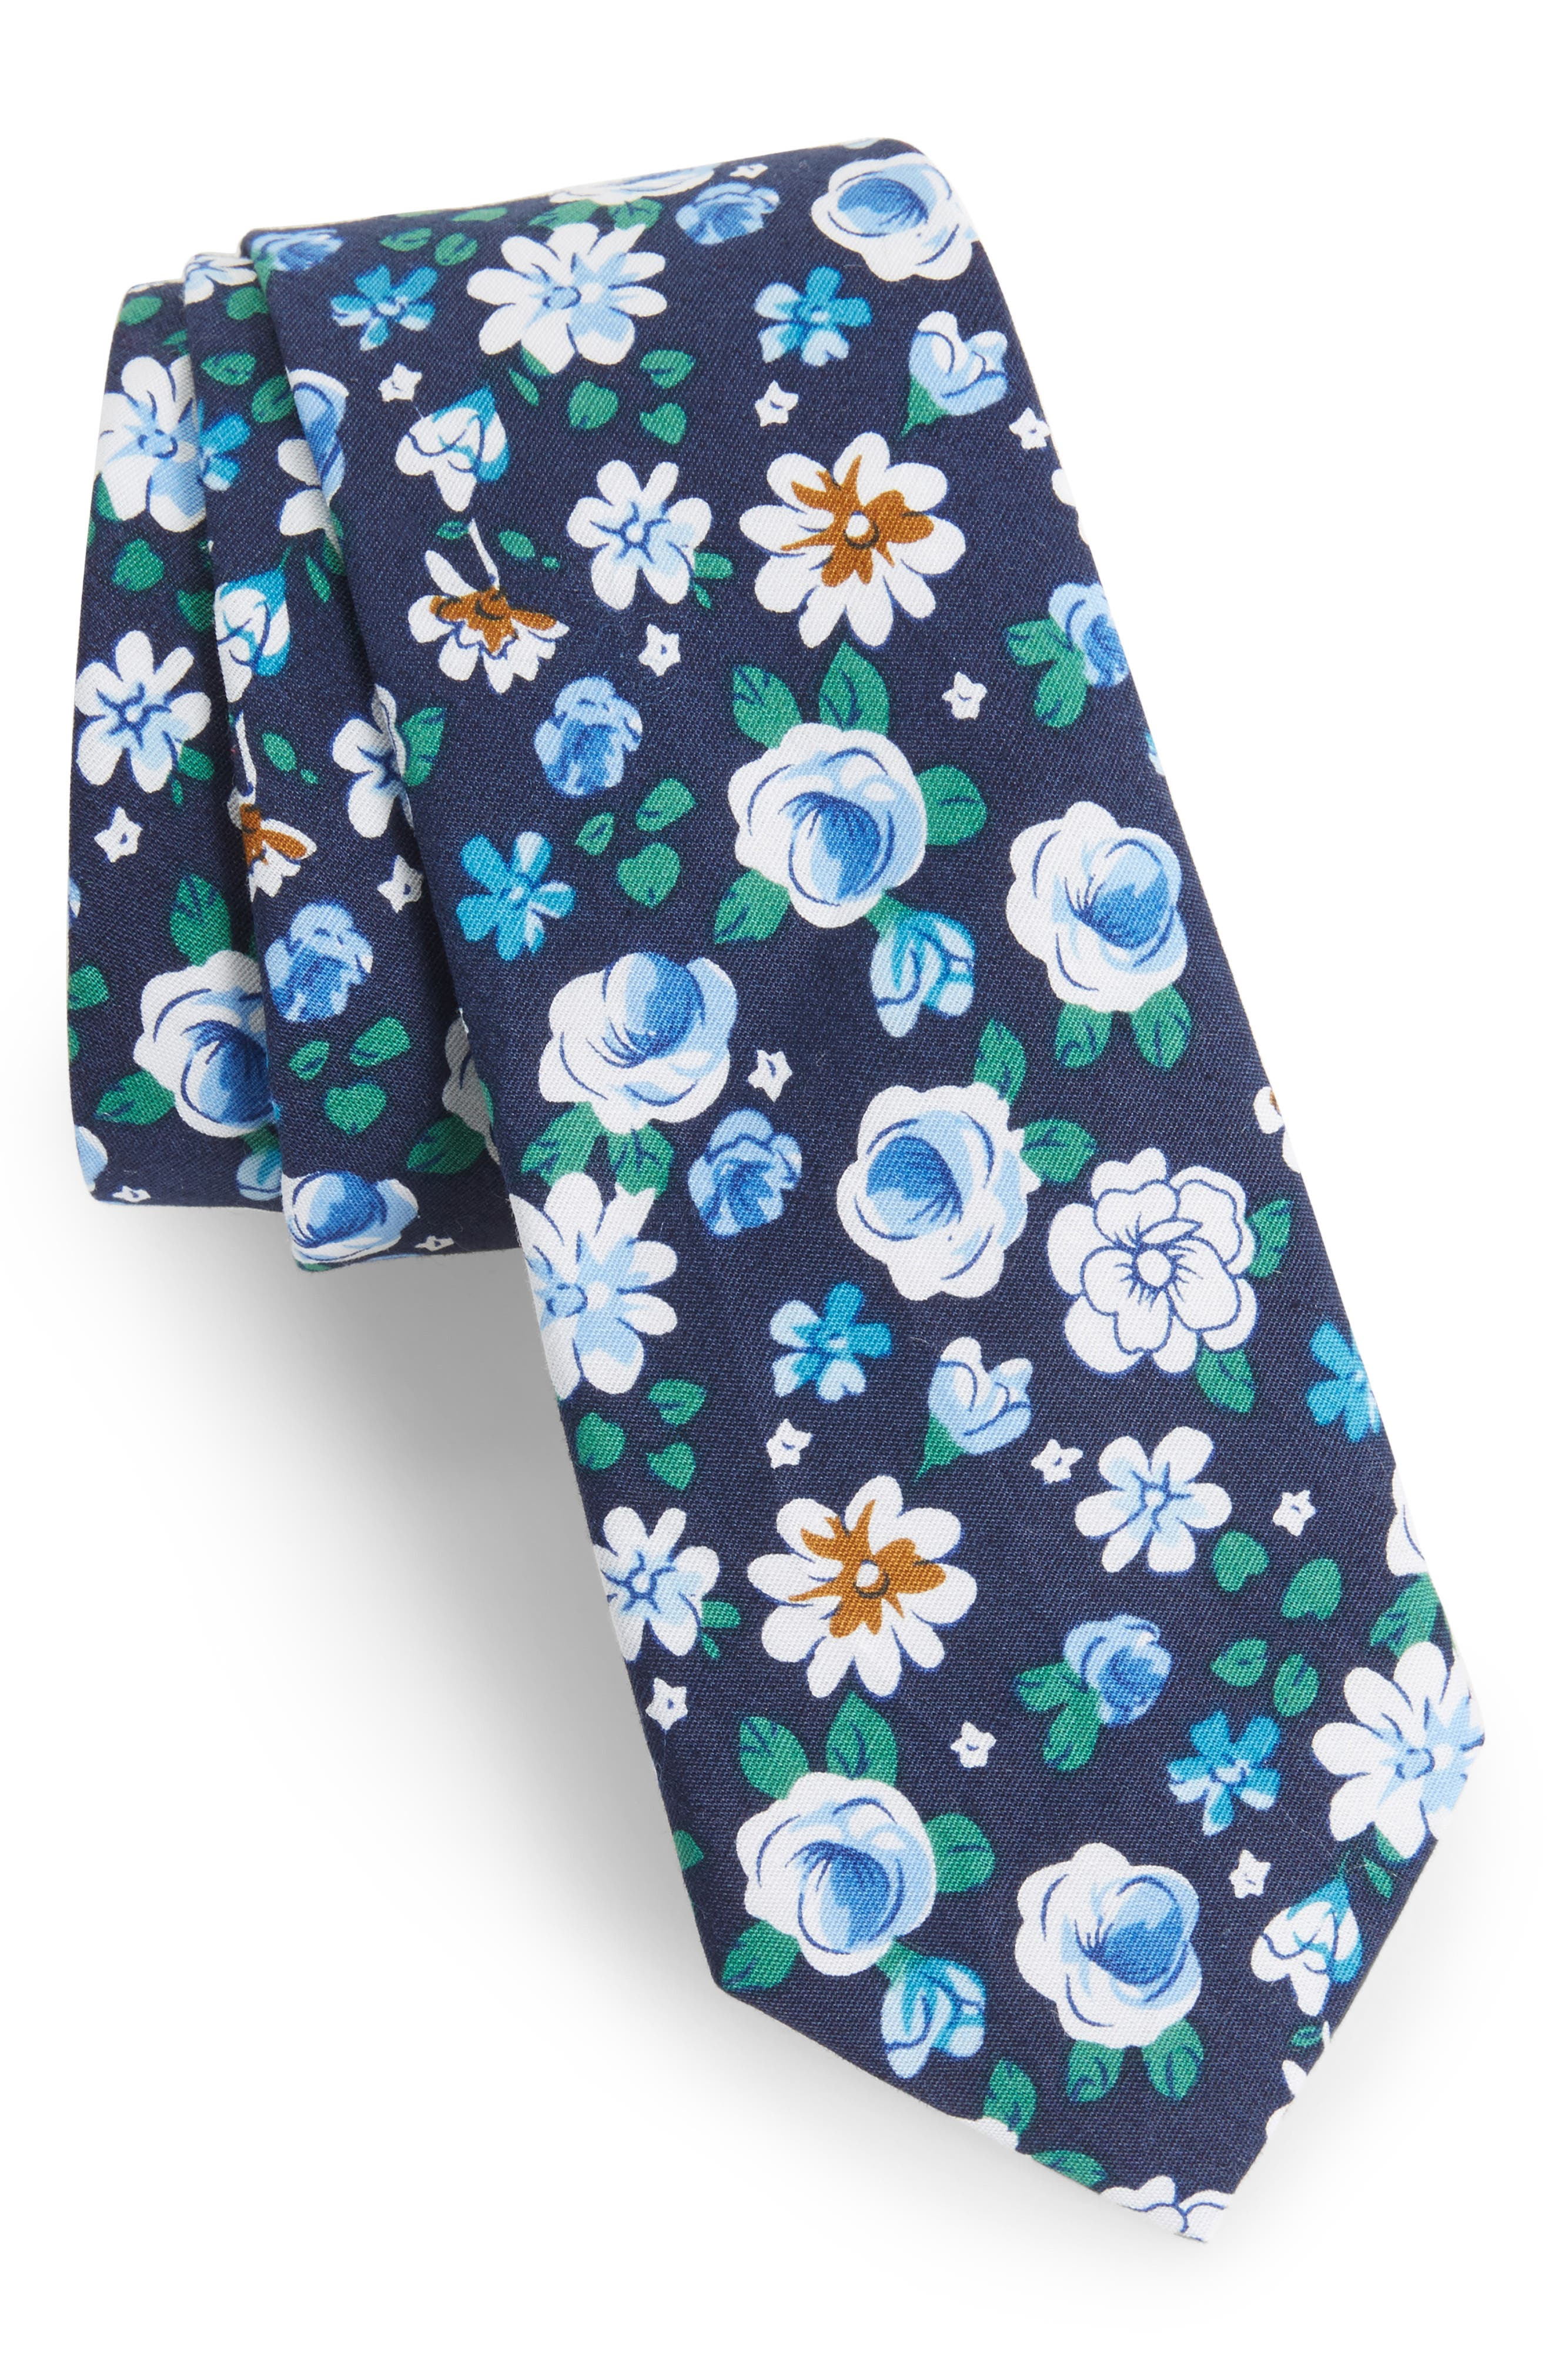 Frenso Floral Cotton Skinny Tie,                             Main thumbnail 1, color,                             Blue